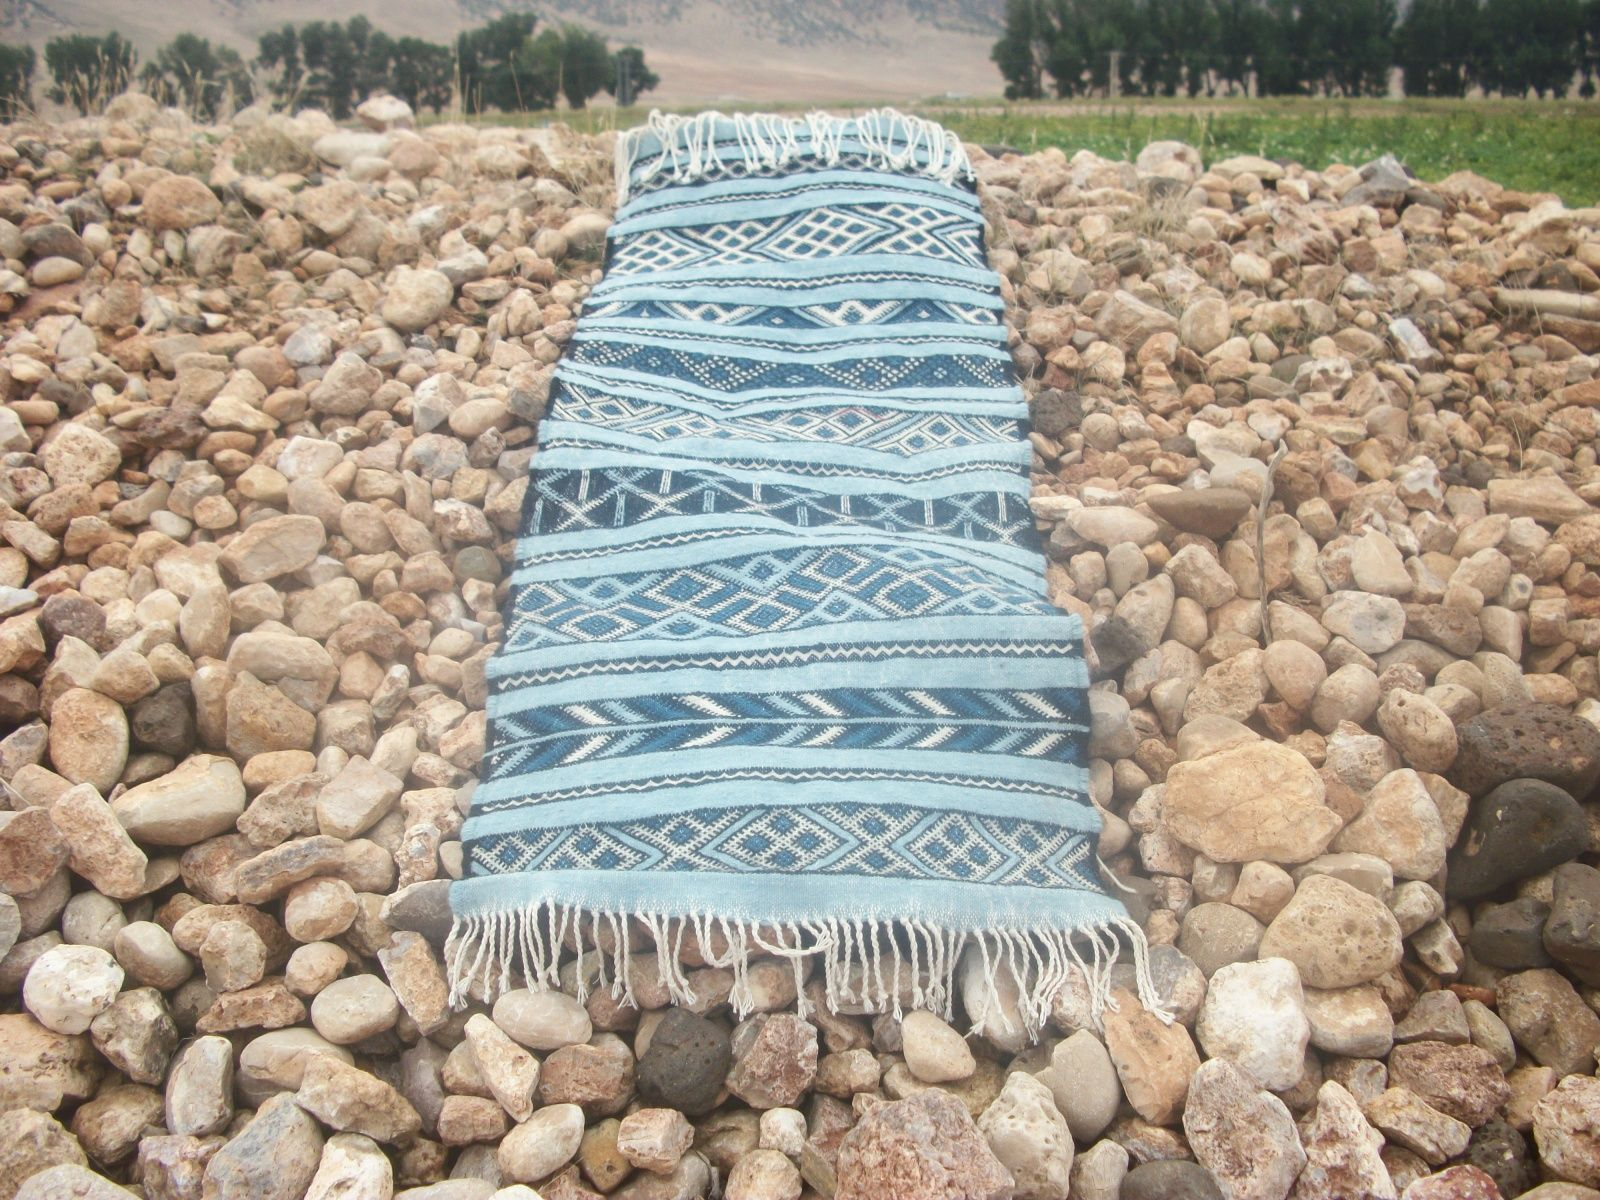 flatweave: Hanbel Uniquely handmade by artisans using Cotton Thread and Tadout - Wool. Crafted by Association Tithrite from Ait Hamza, Morocco. Qty: 1